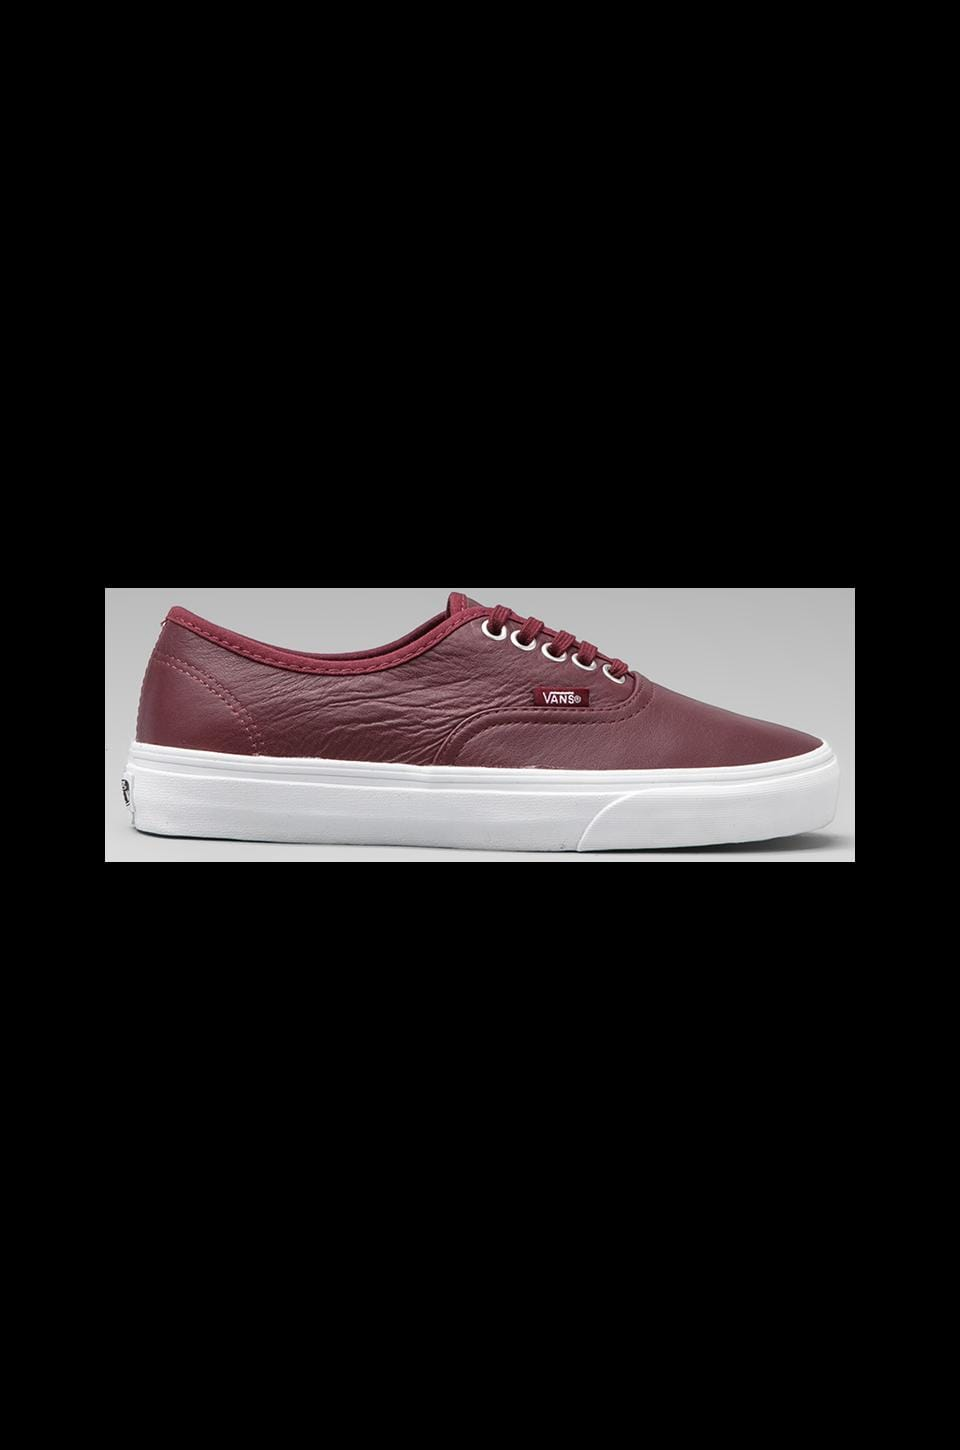 Vans Authentic Aged Leather in Port Royale